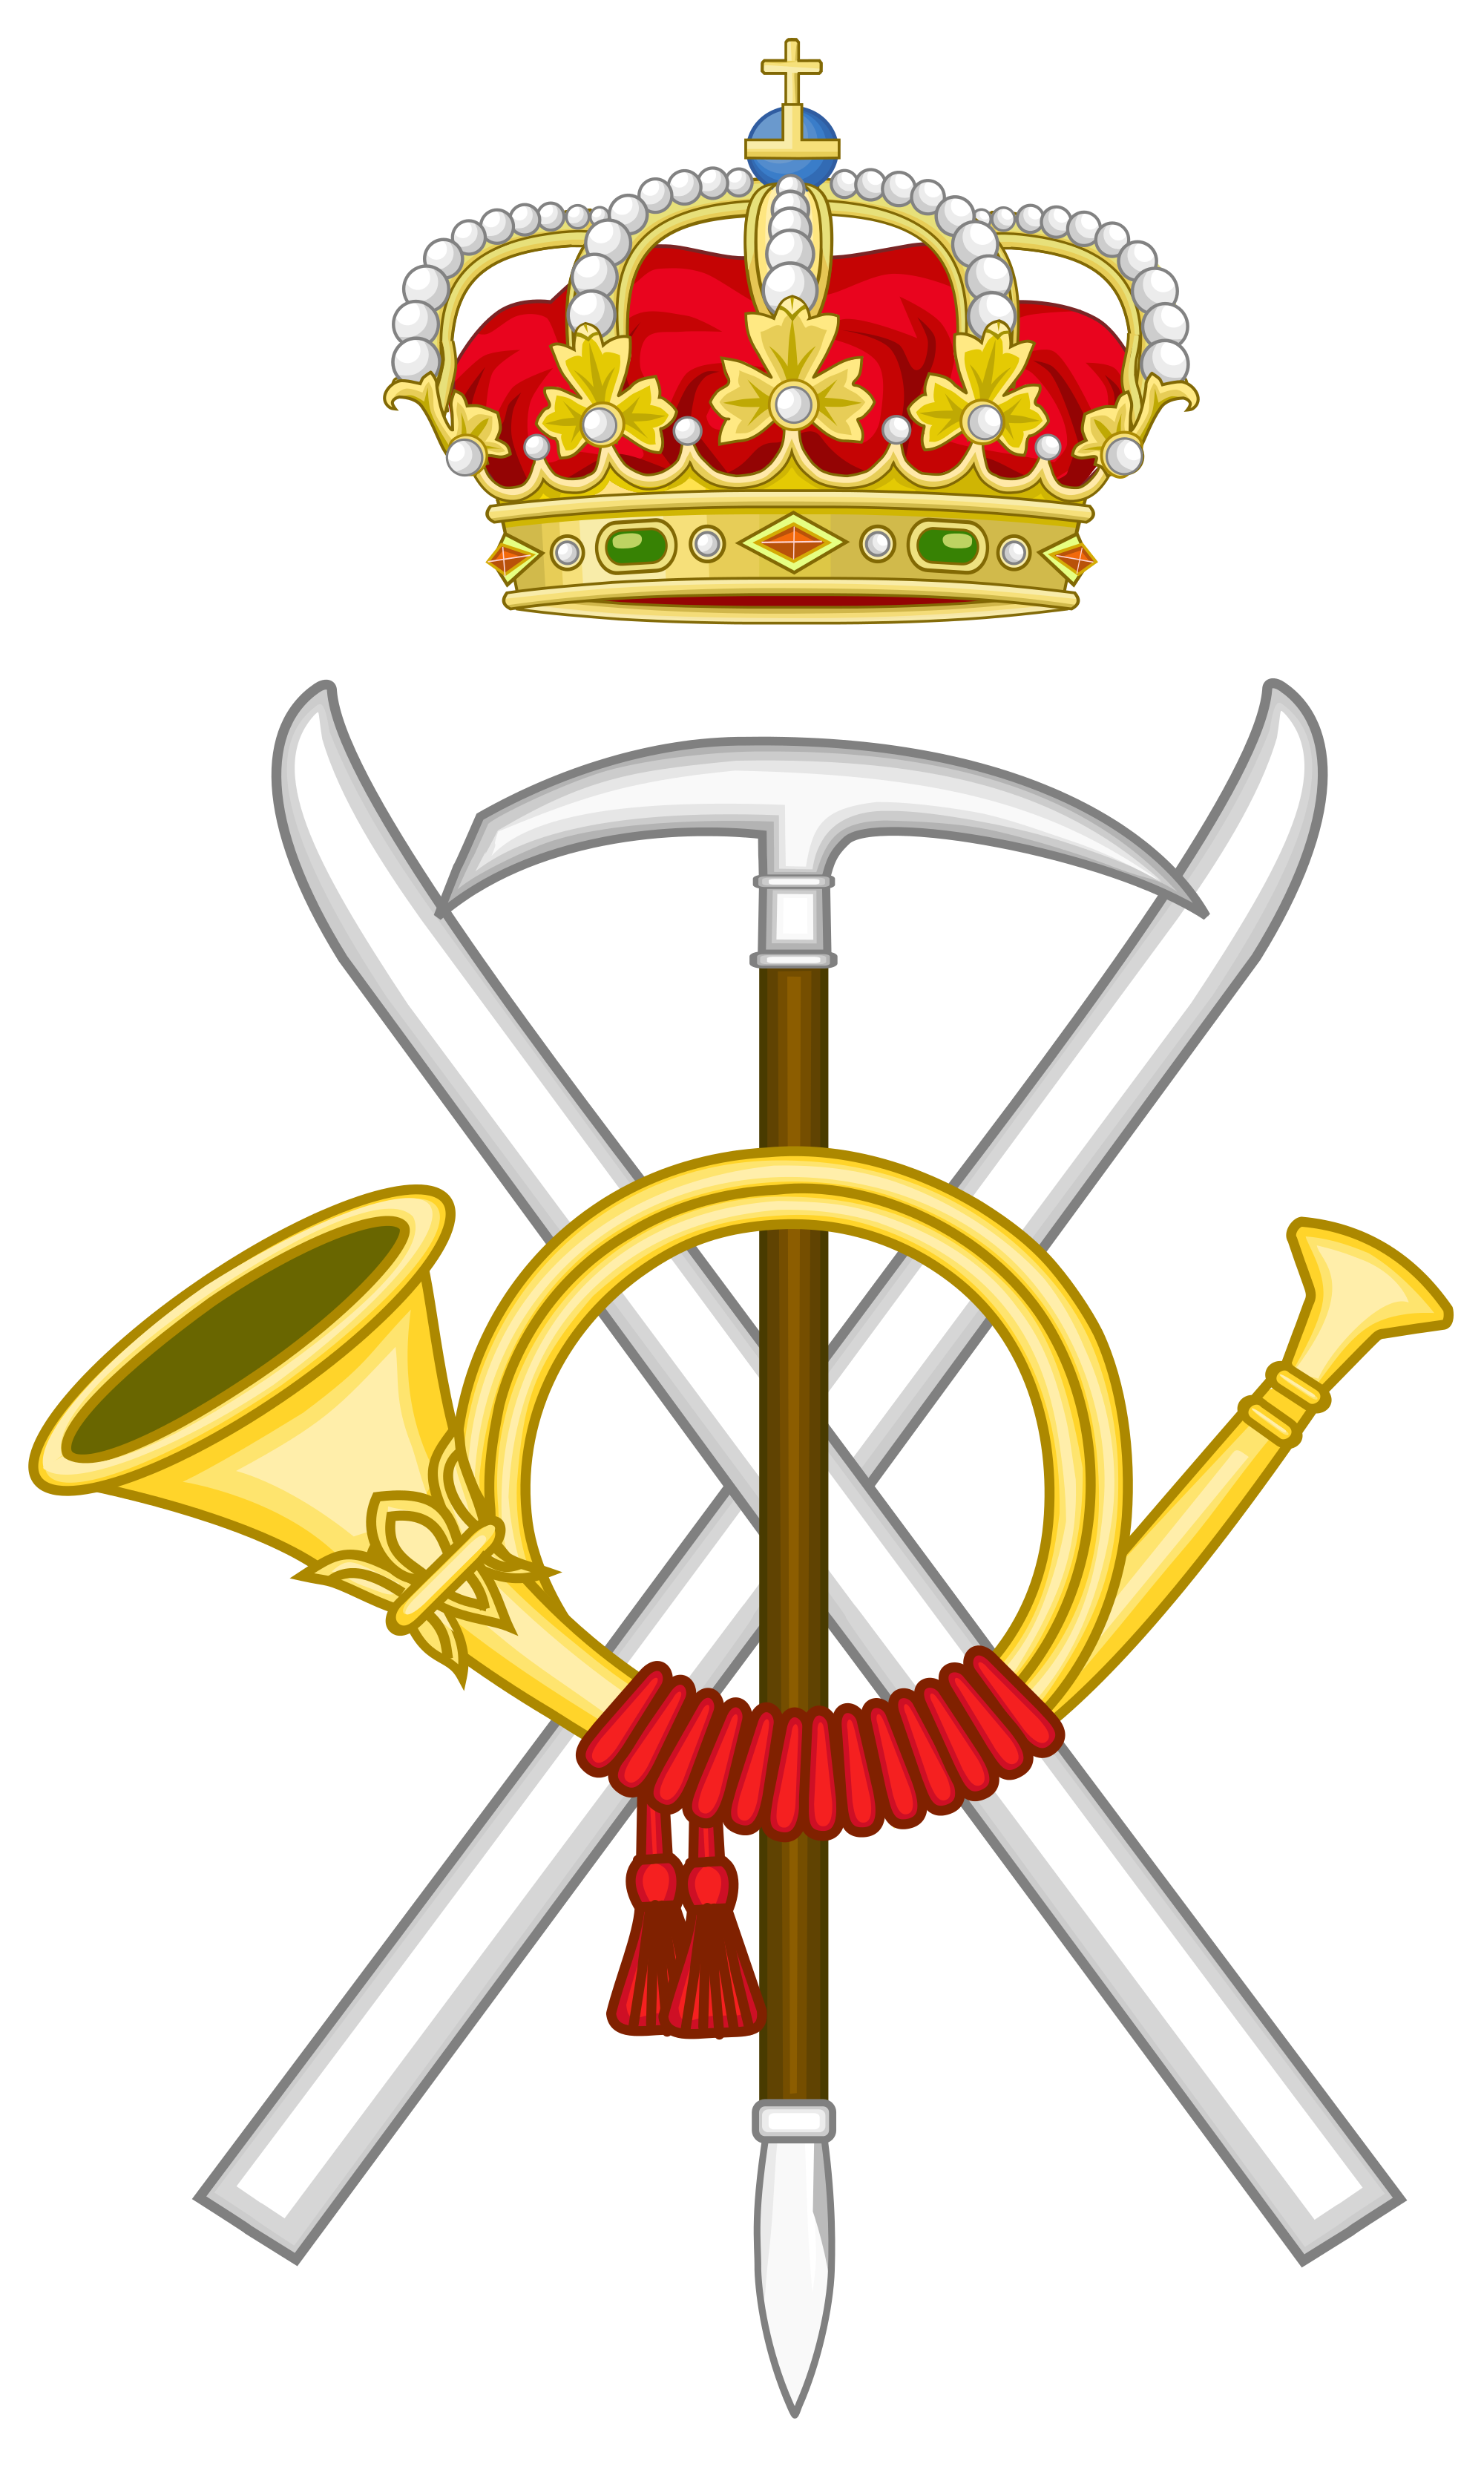 File:Emblem of the Spanish Army Mountain Forces.svg.